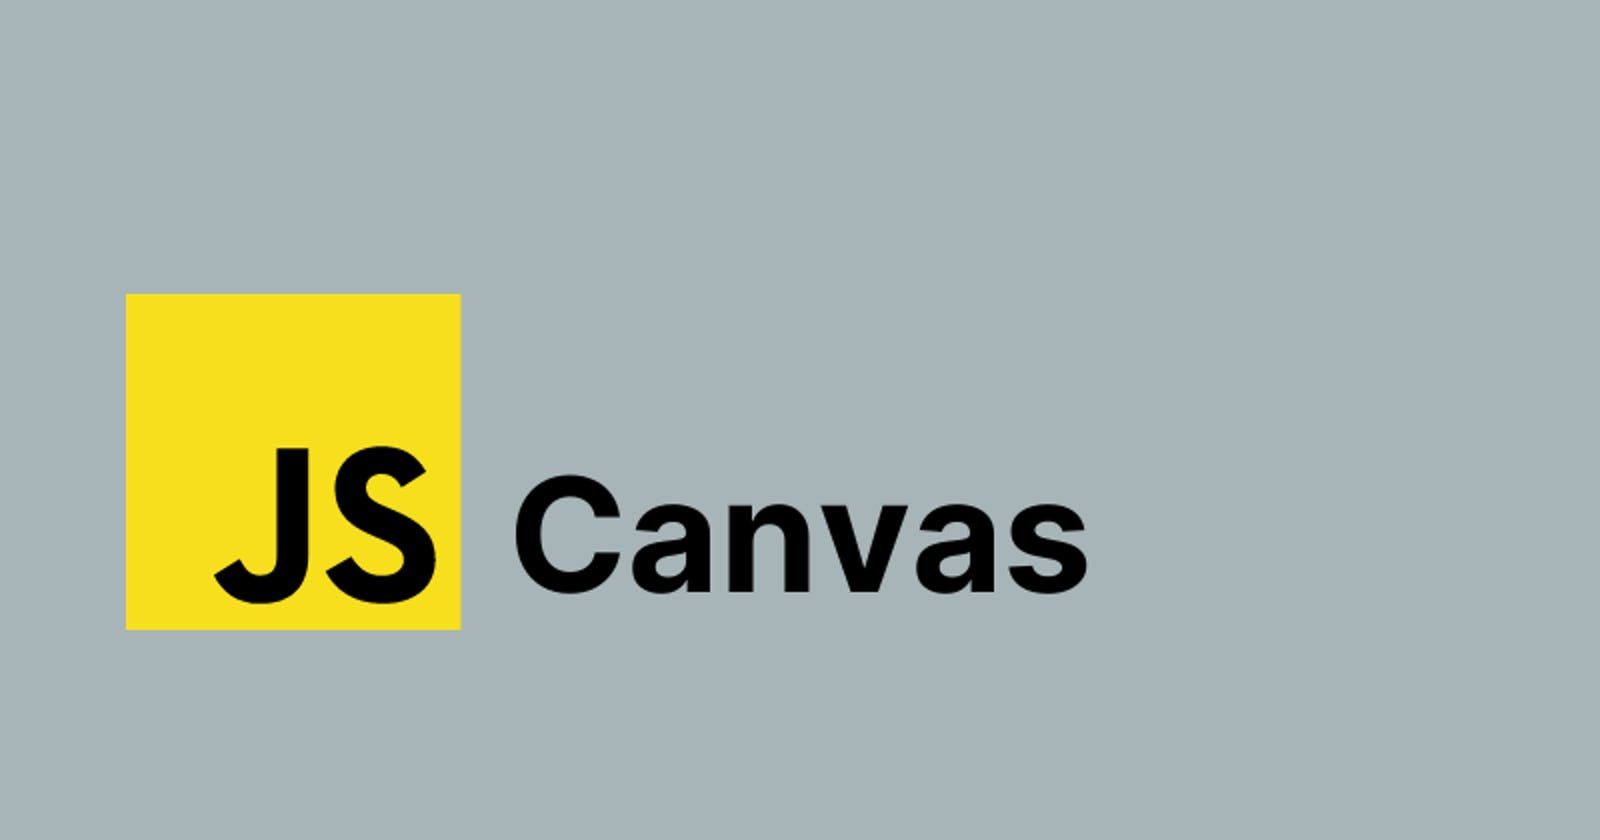 Animated Canvas in JS